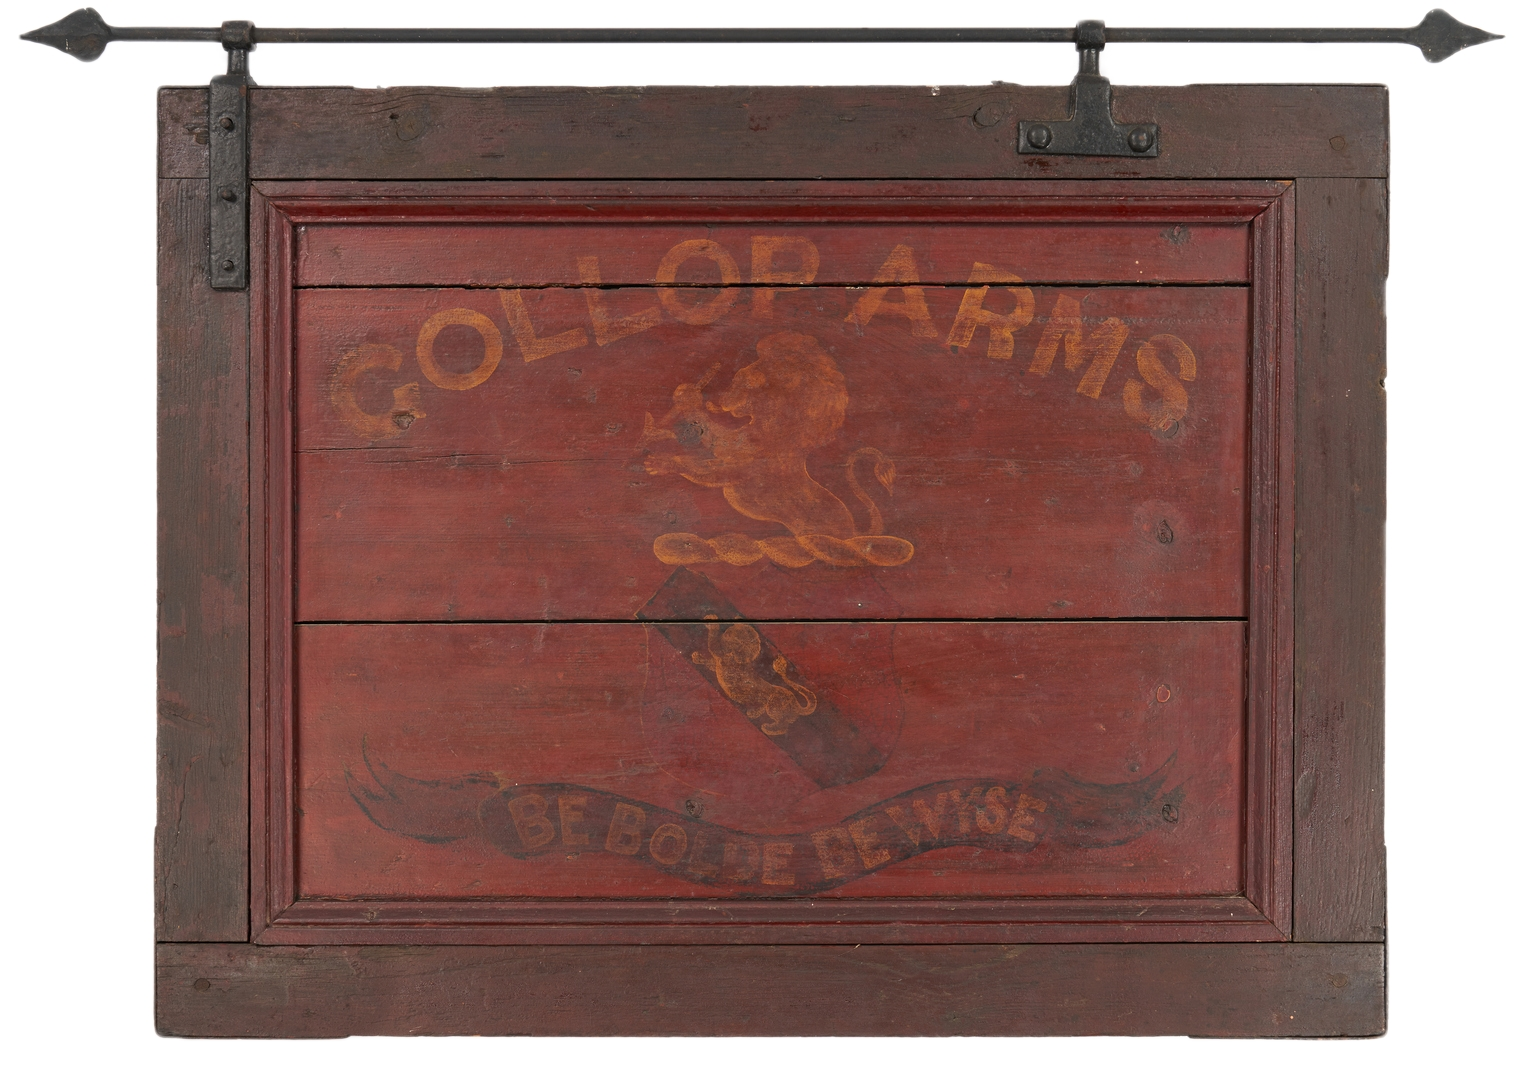 Lot 1173: English Painted Pub Sign, Gollop Arms